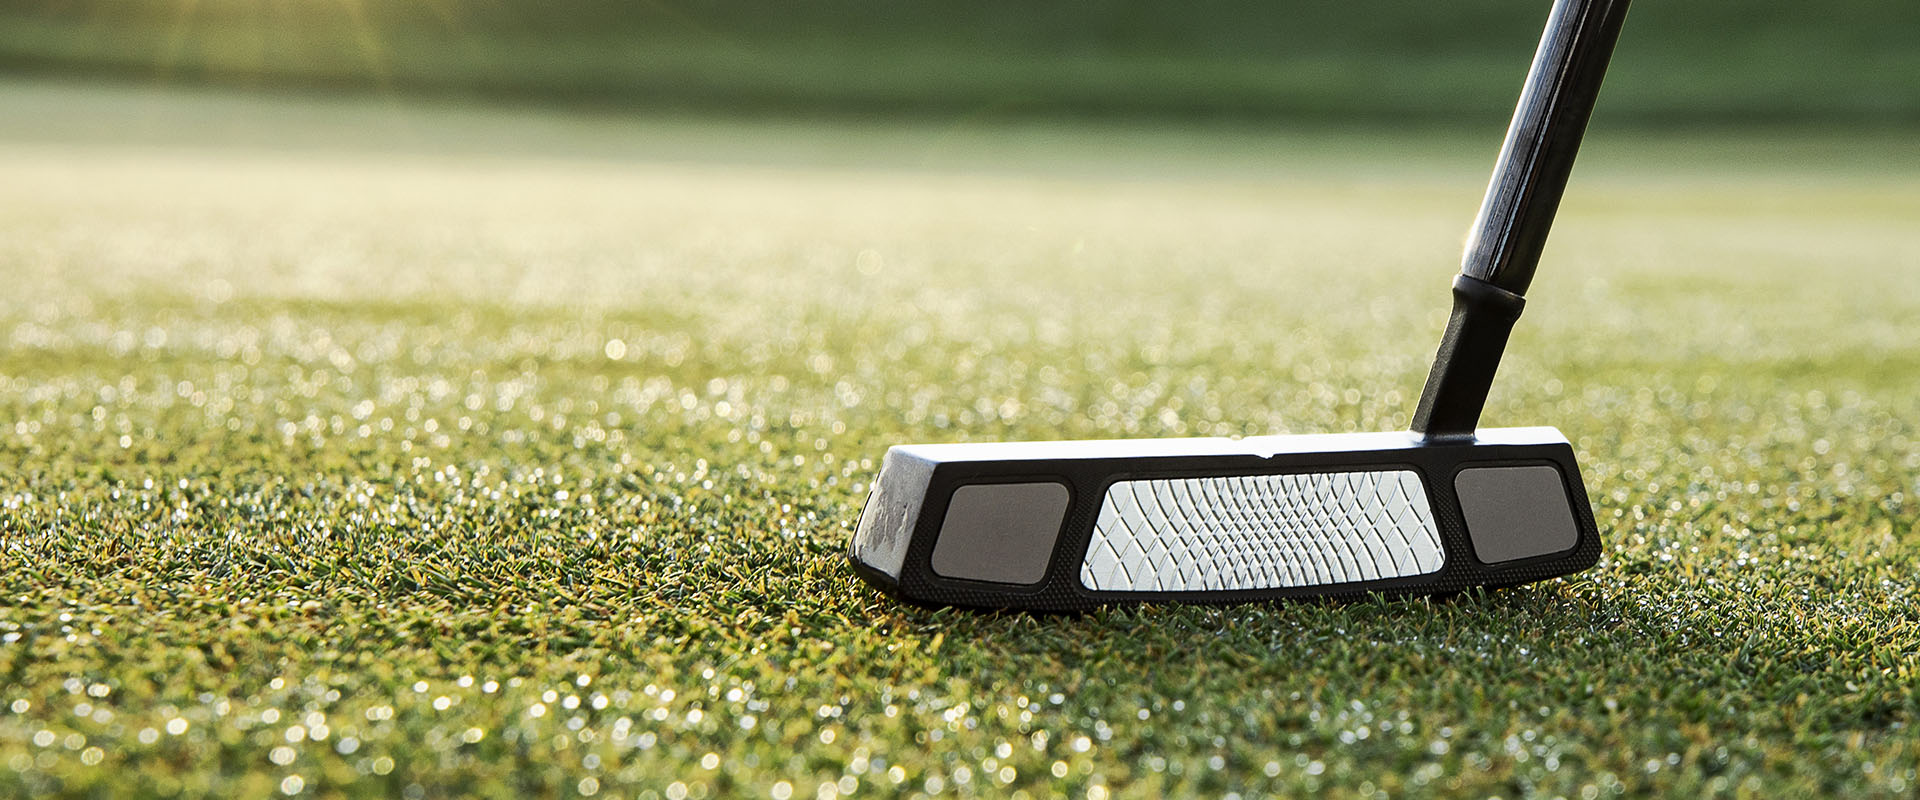 Cleveland Golf Frontline Putters Two on Grass